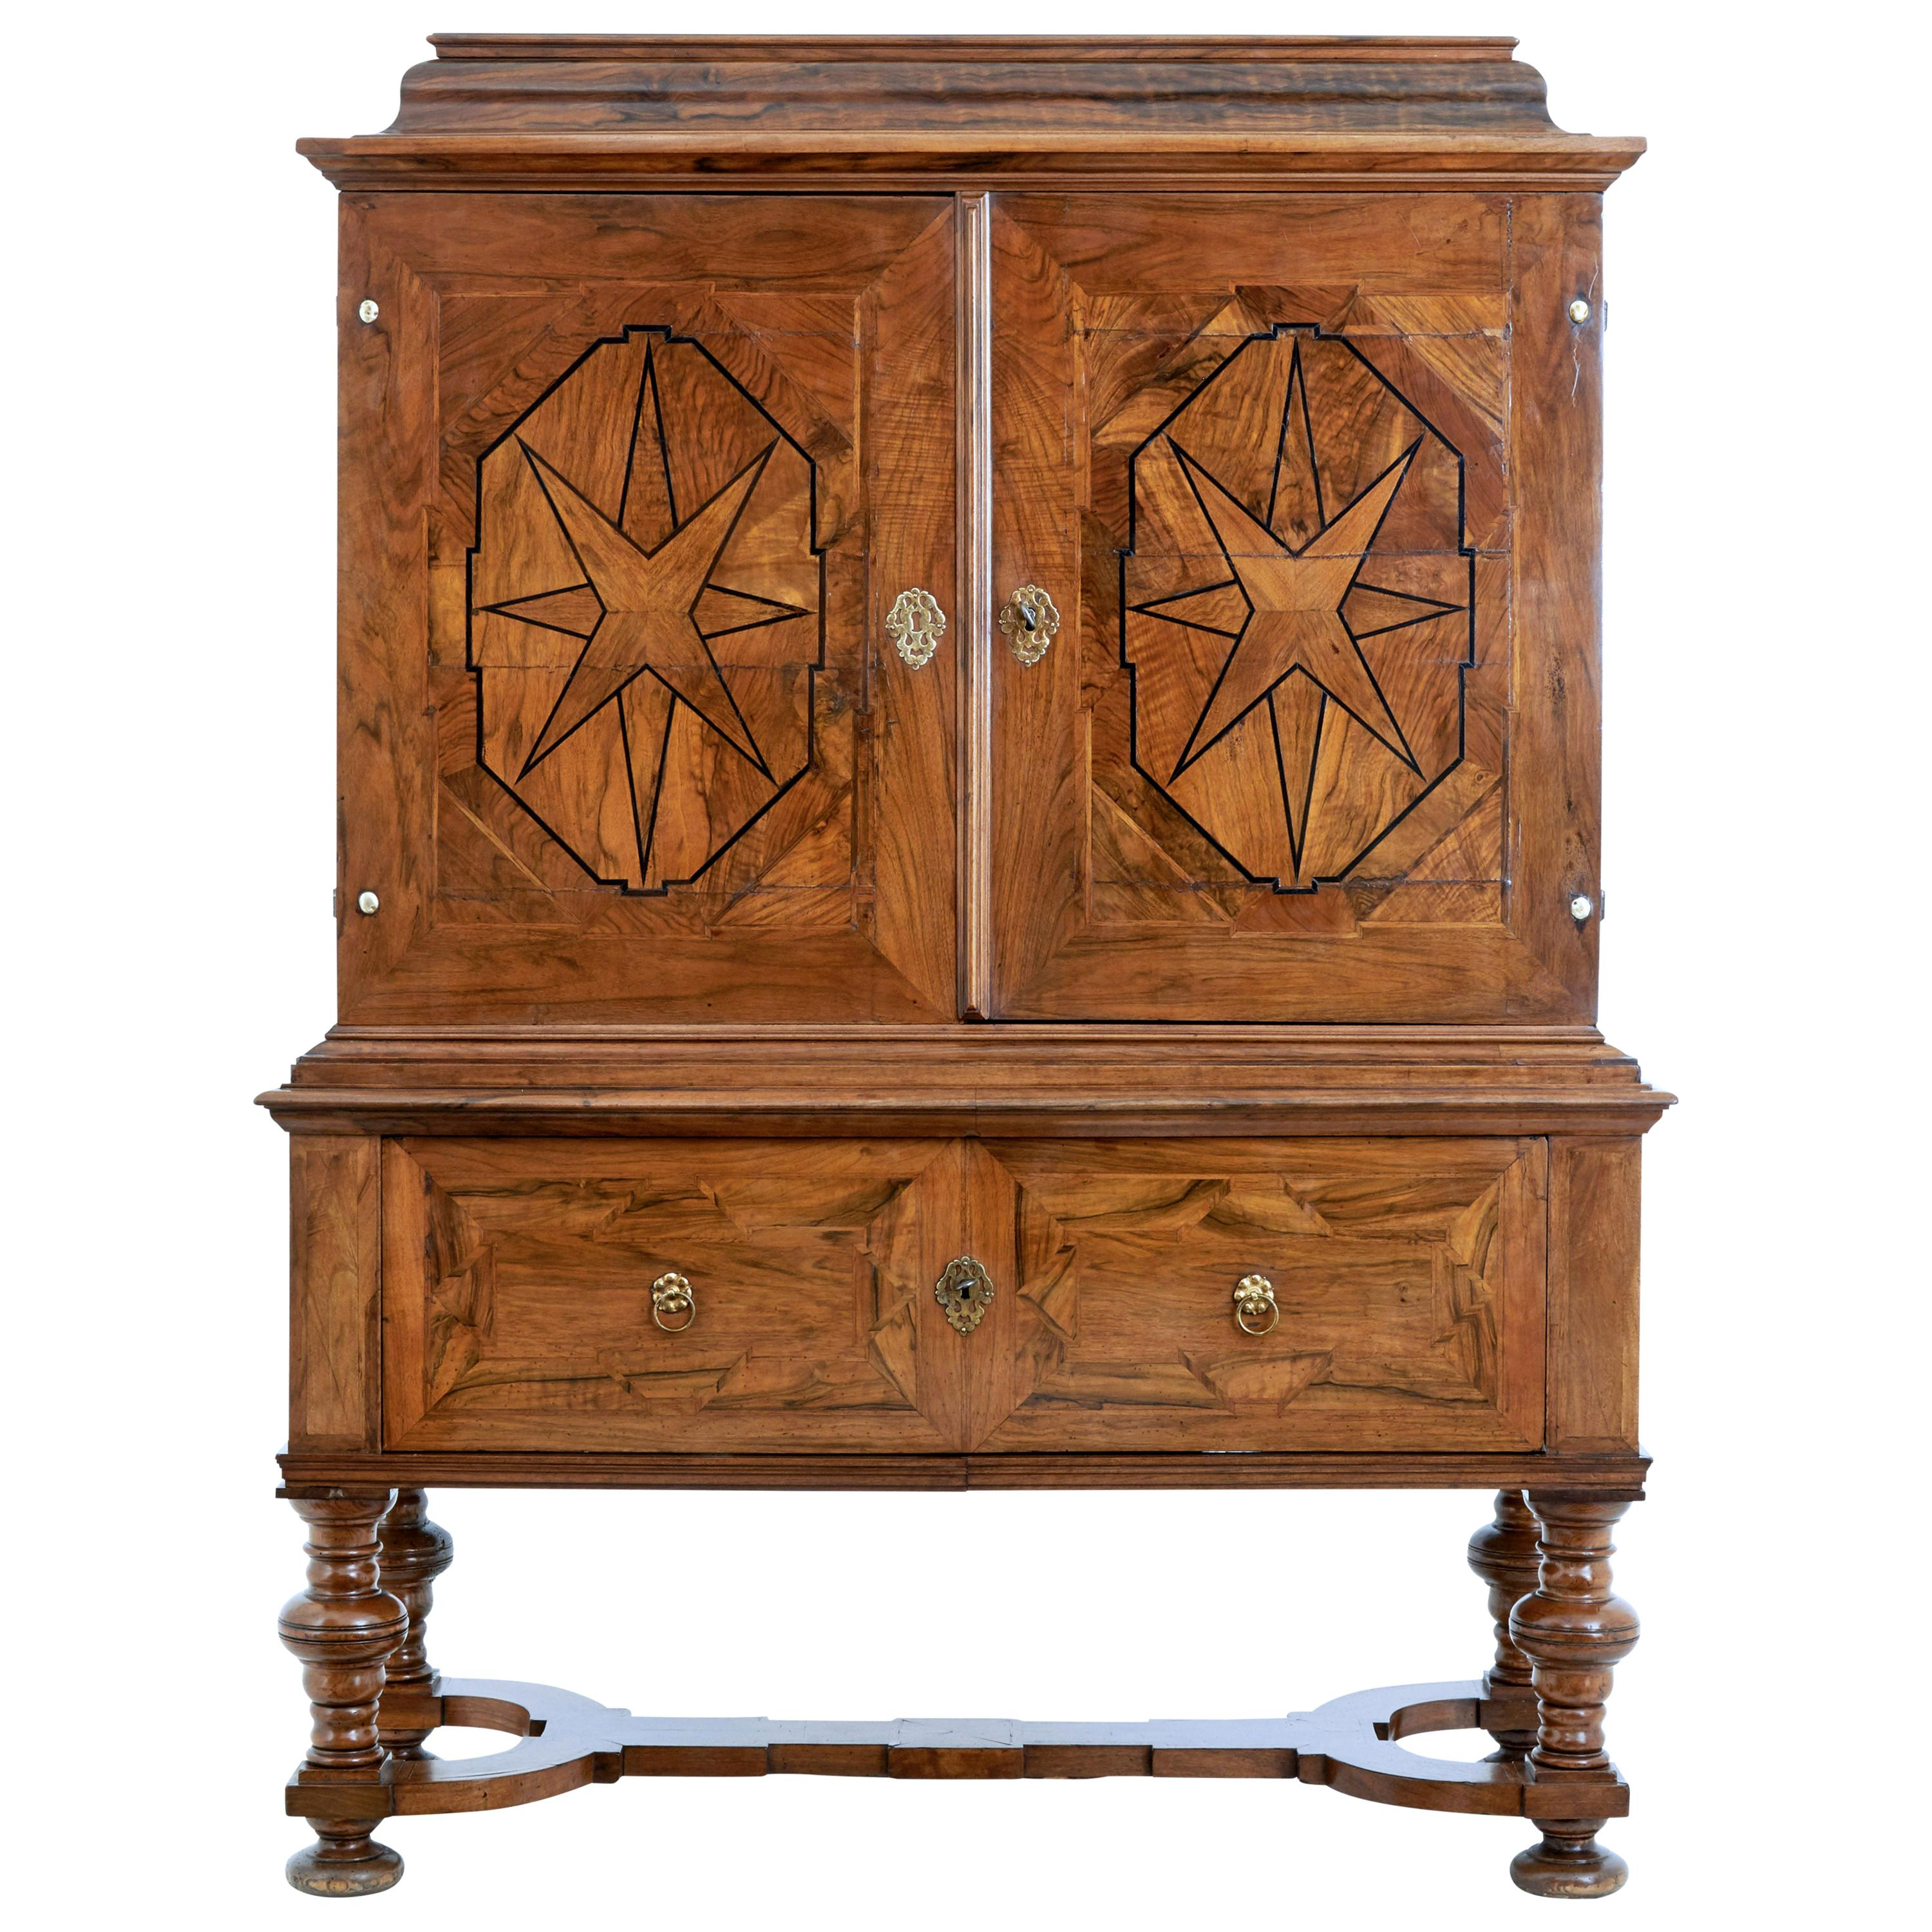 Early 18th Century Swedish Baroque Walnut Cabinet on Stand